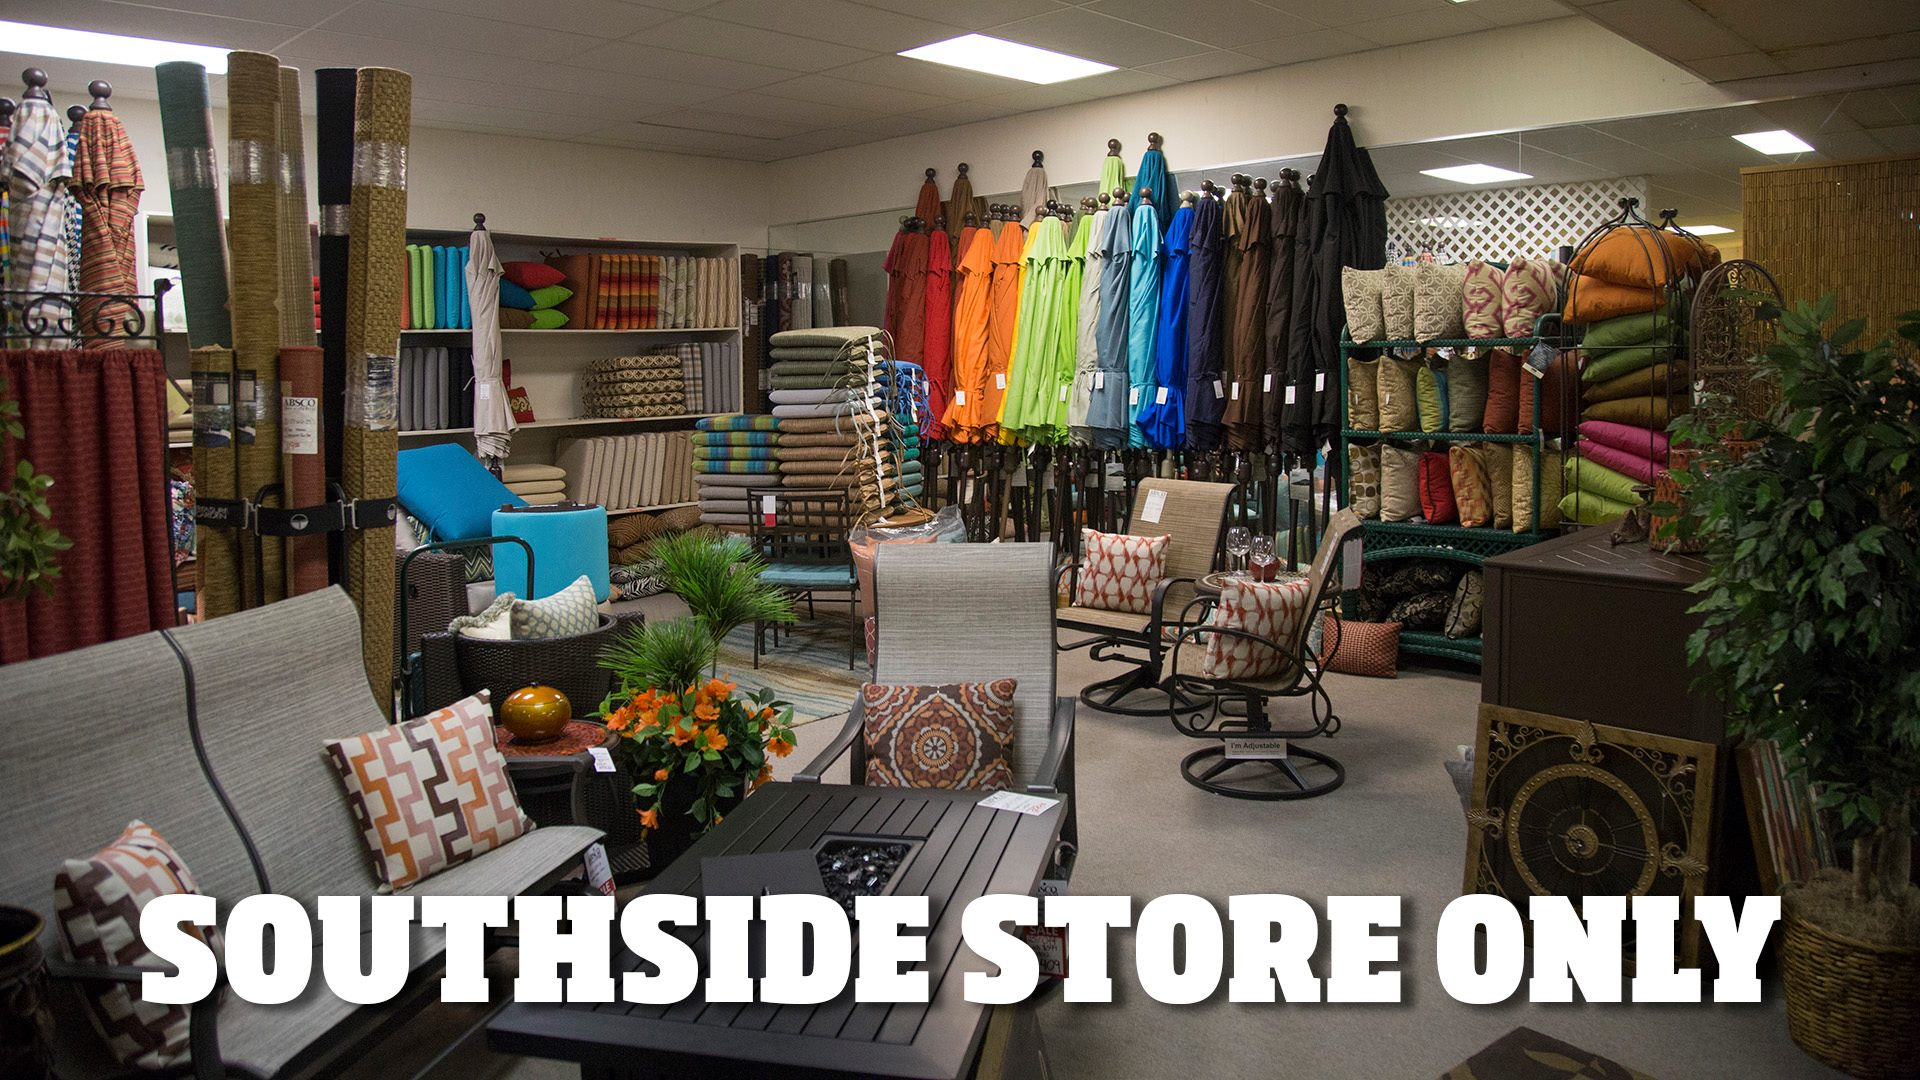 Southside Store Only